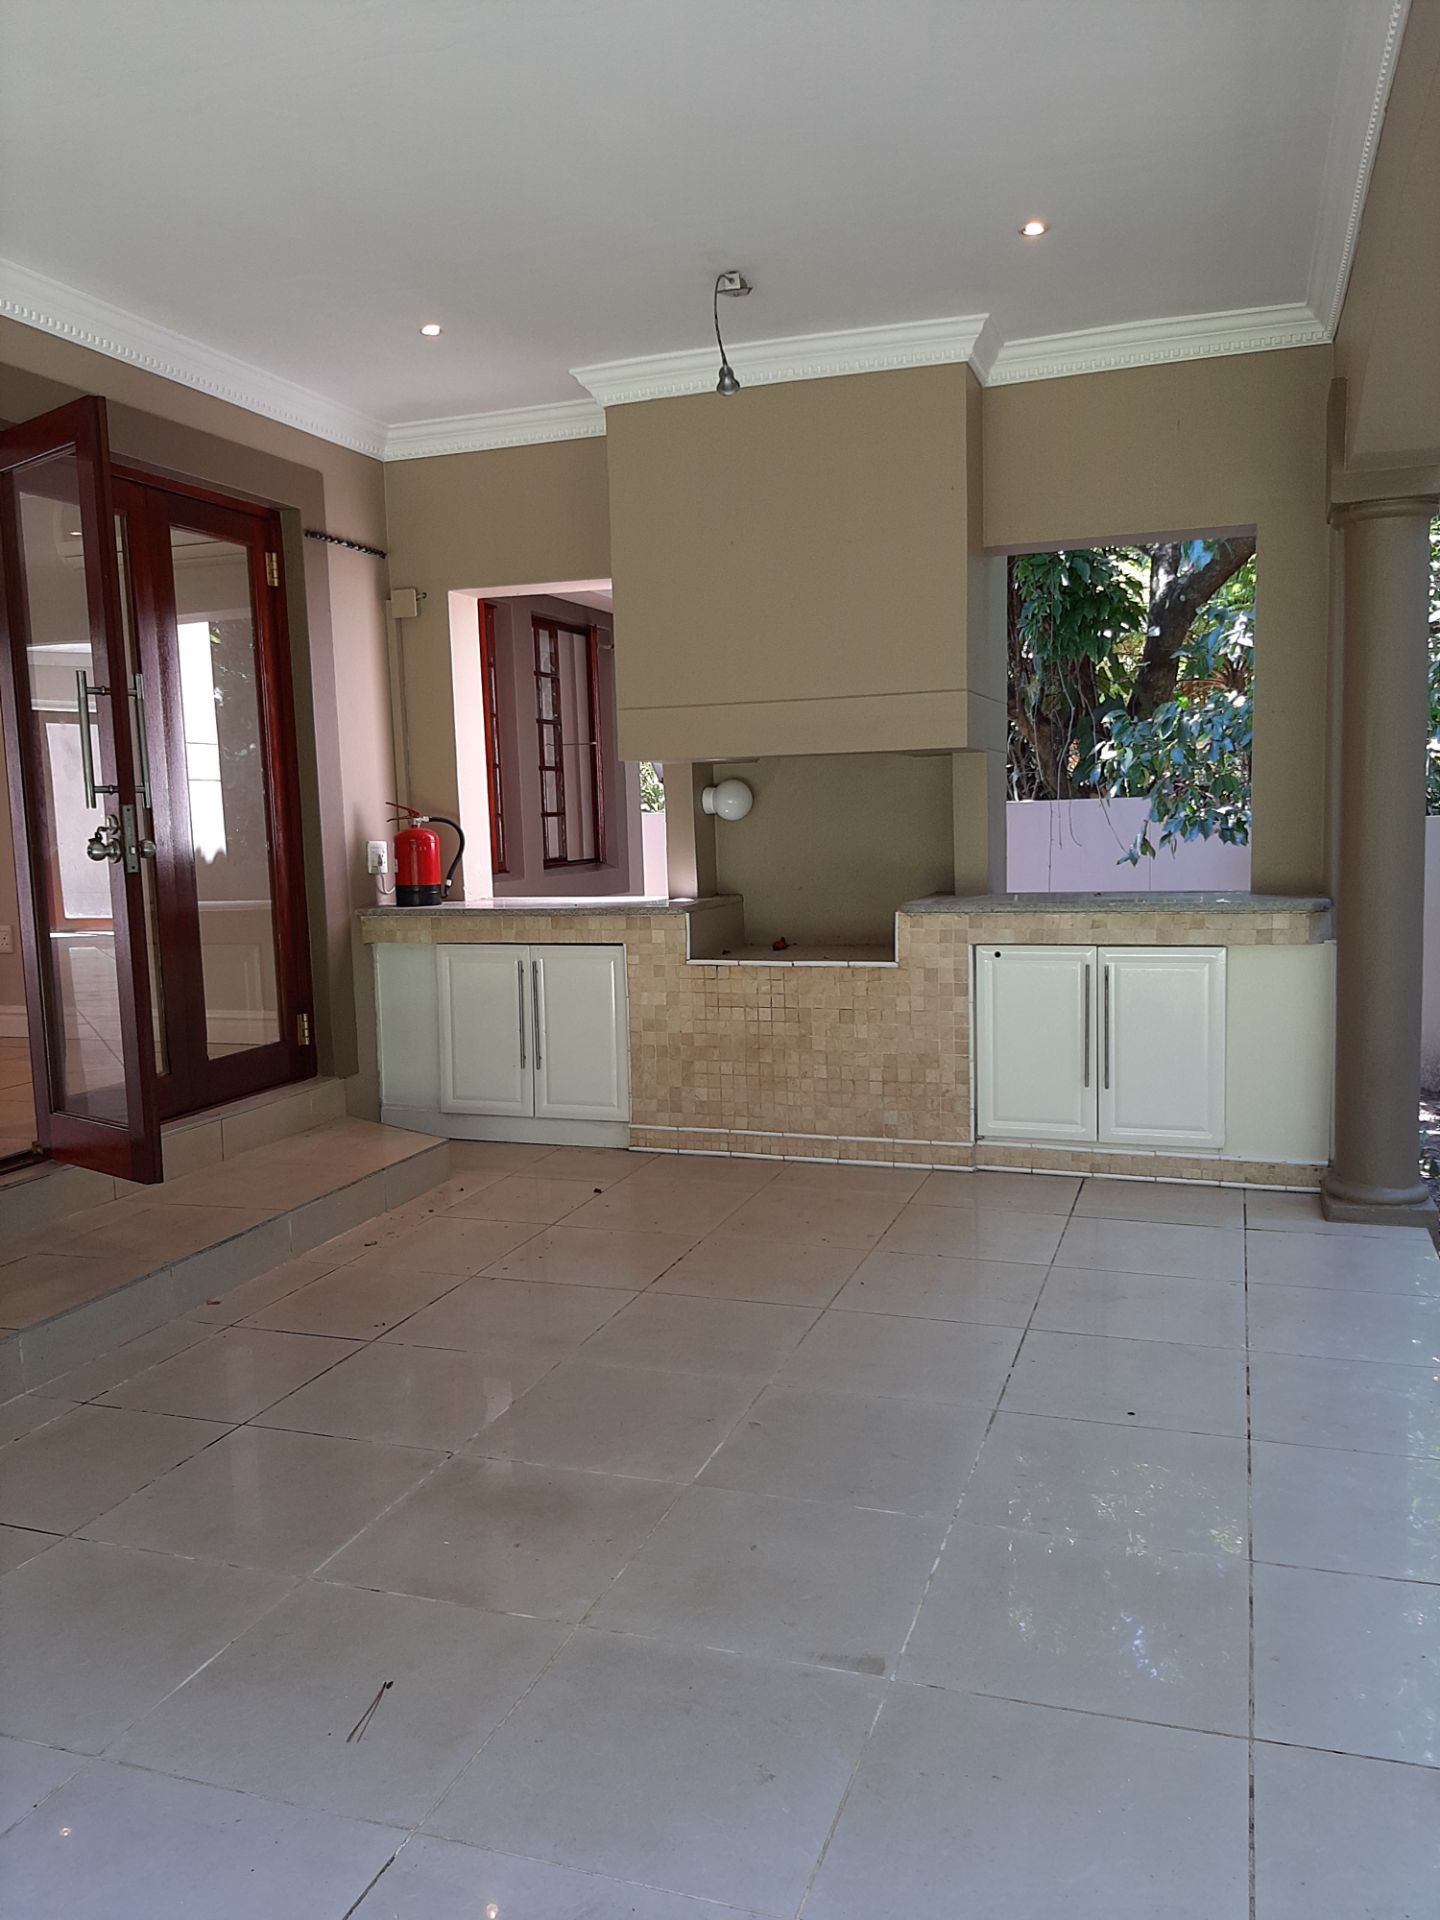 Apartment in Southbroom - Built in braai on patio